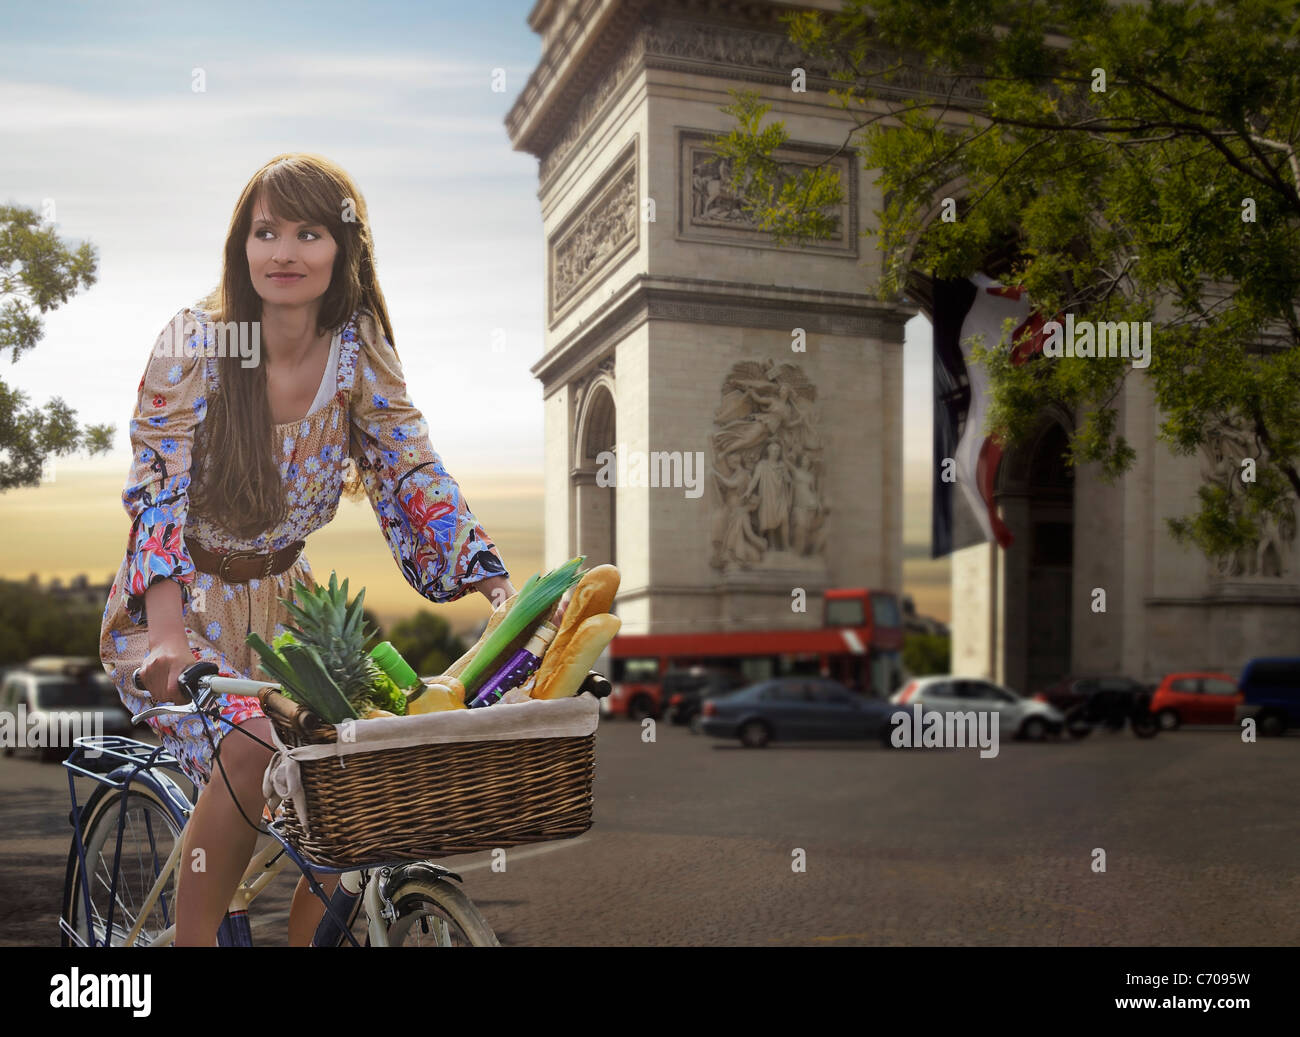 Woman riding bicycle by Arc de Triomphe - Stock Image